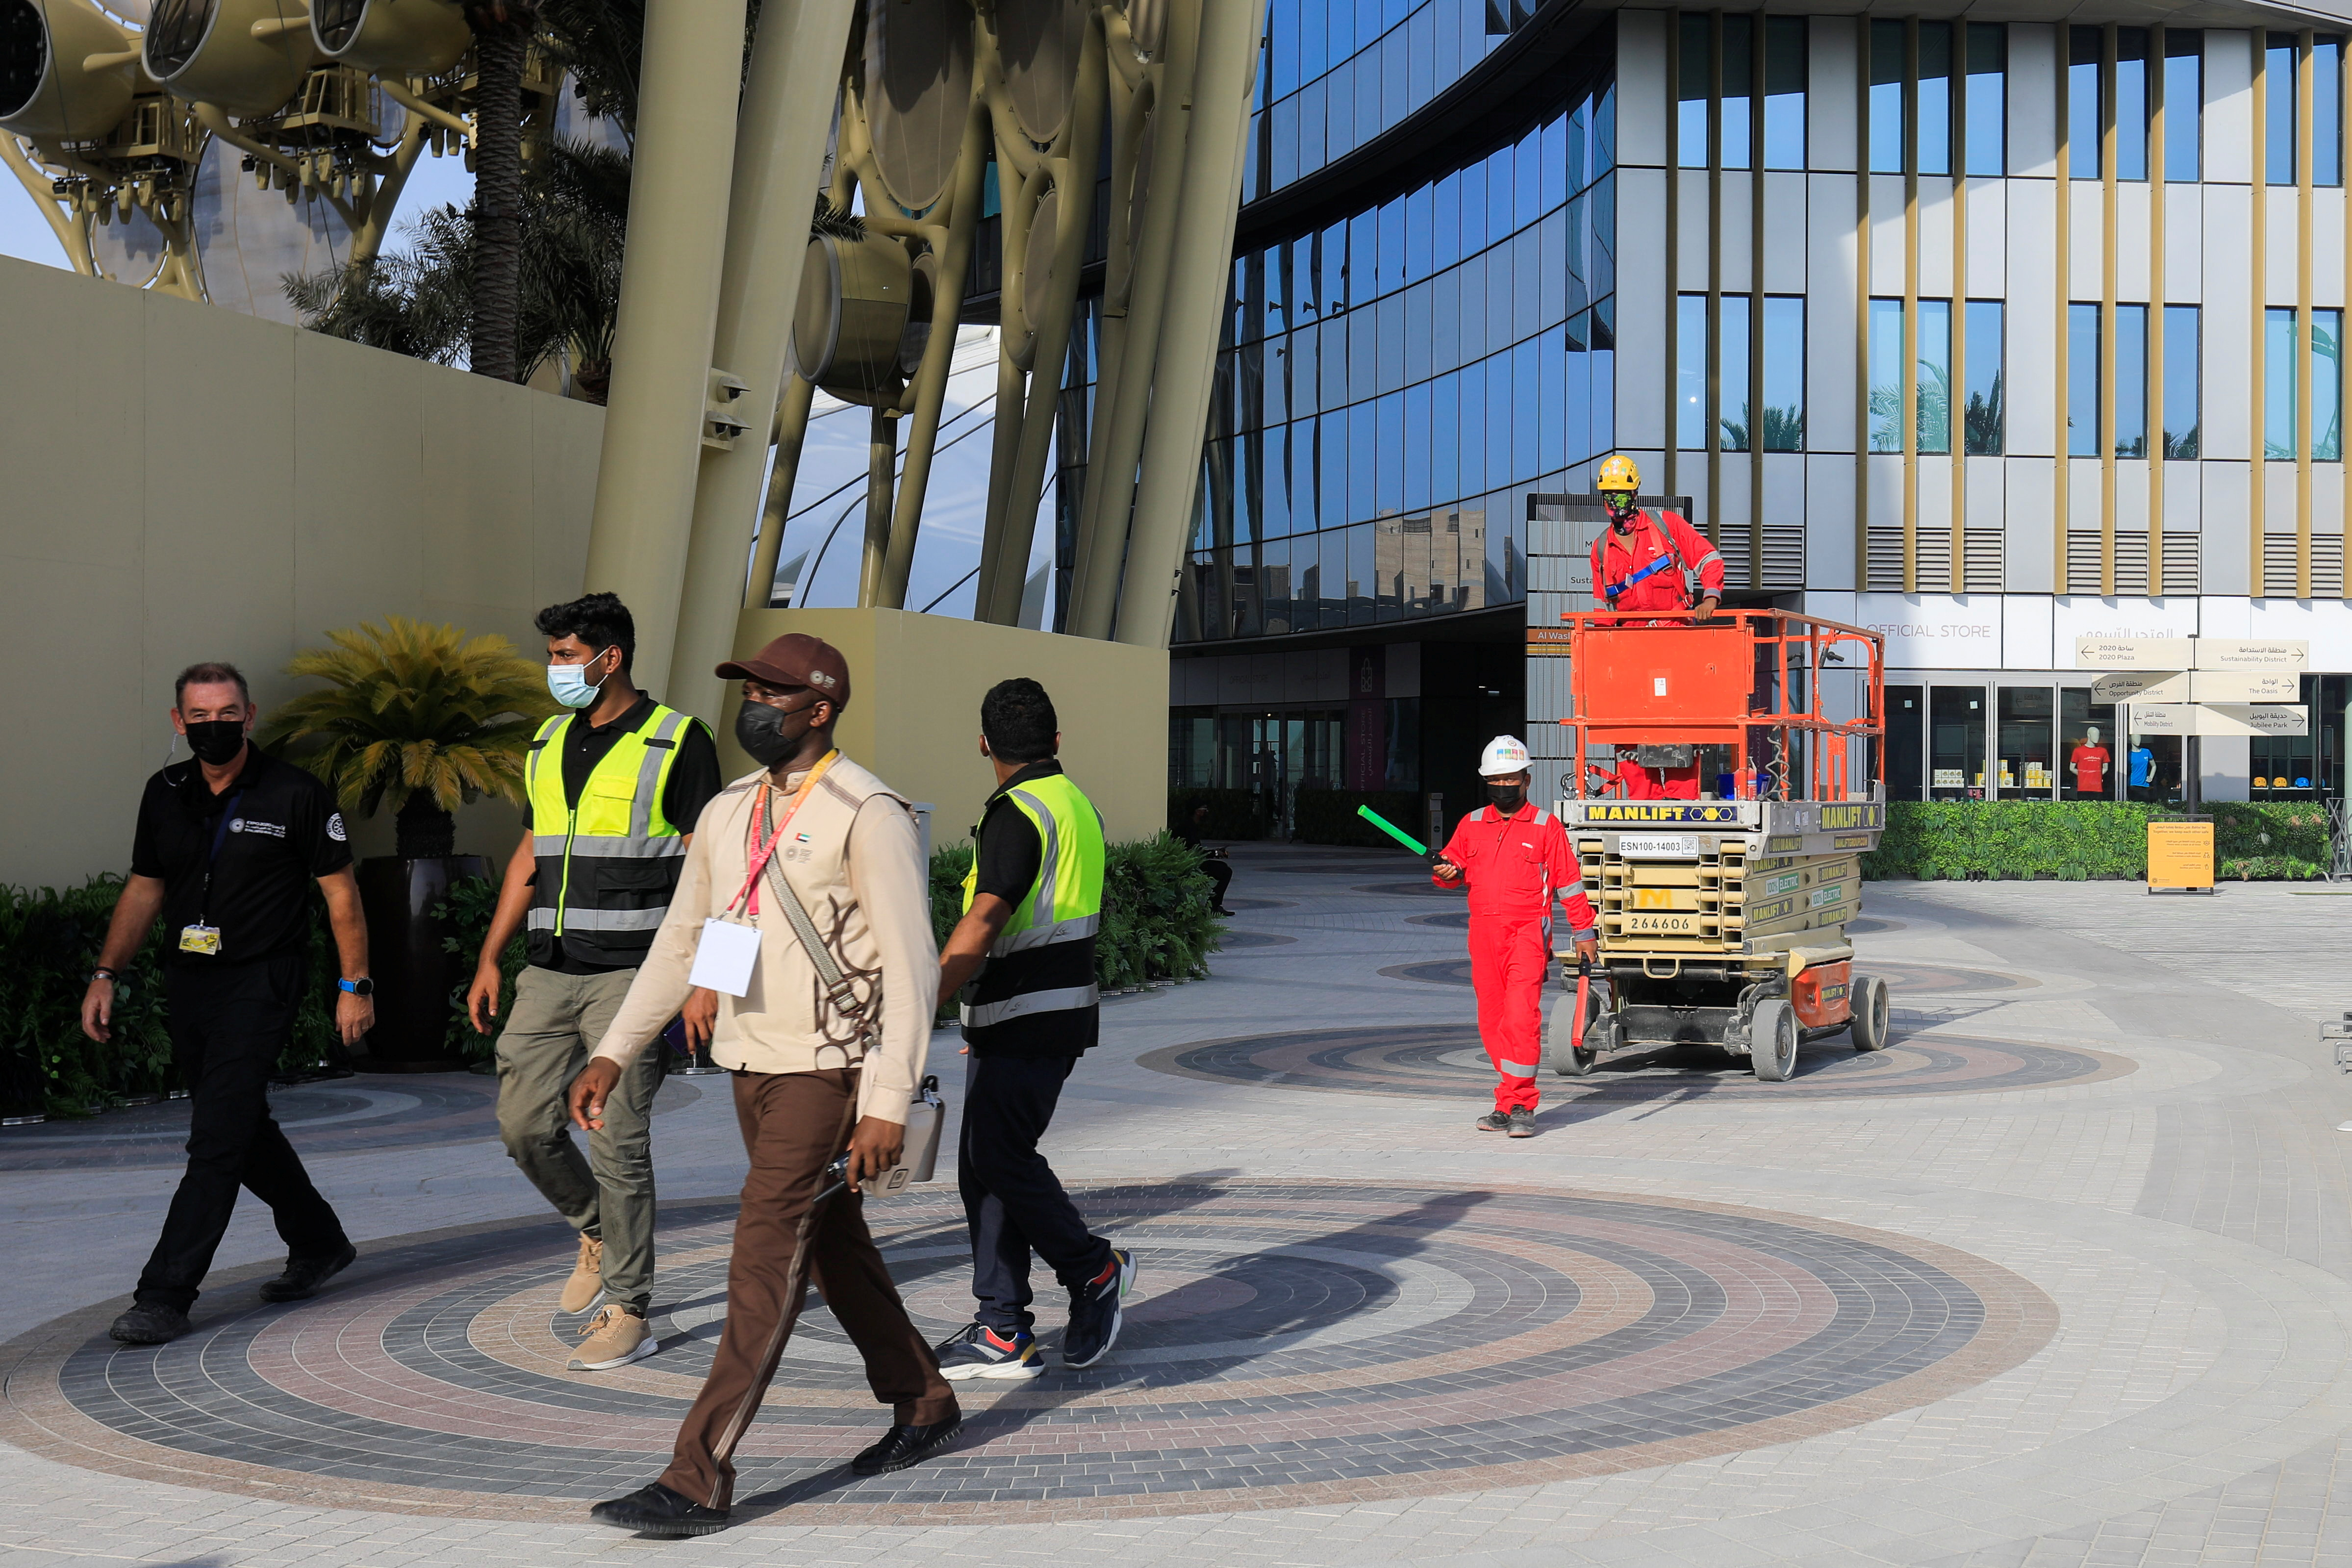 Workers walk at the Expo 2020 site ahead of the opening ceremony in Dubai, United Arab Emirates, September 30, 2021. REUTERS/Rula Rouhana